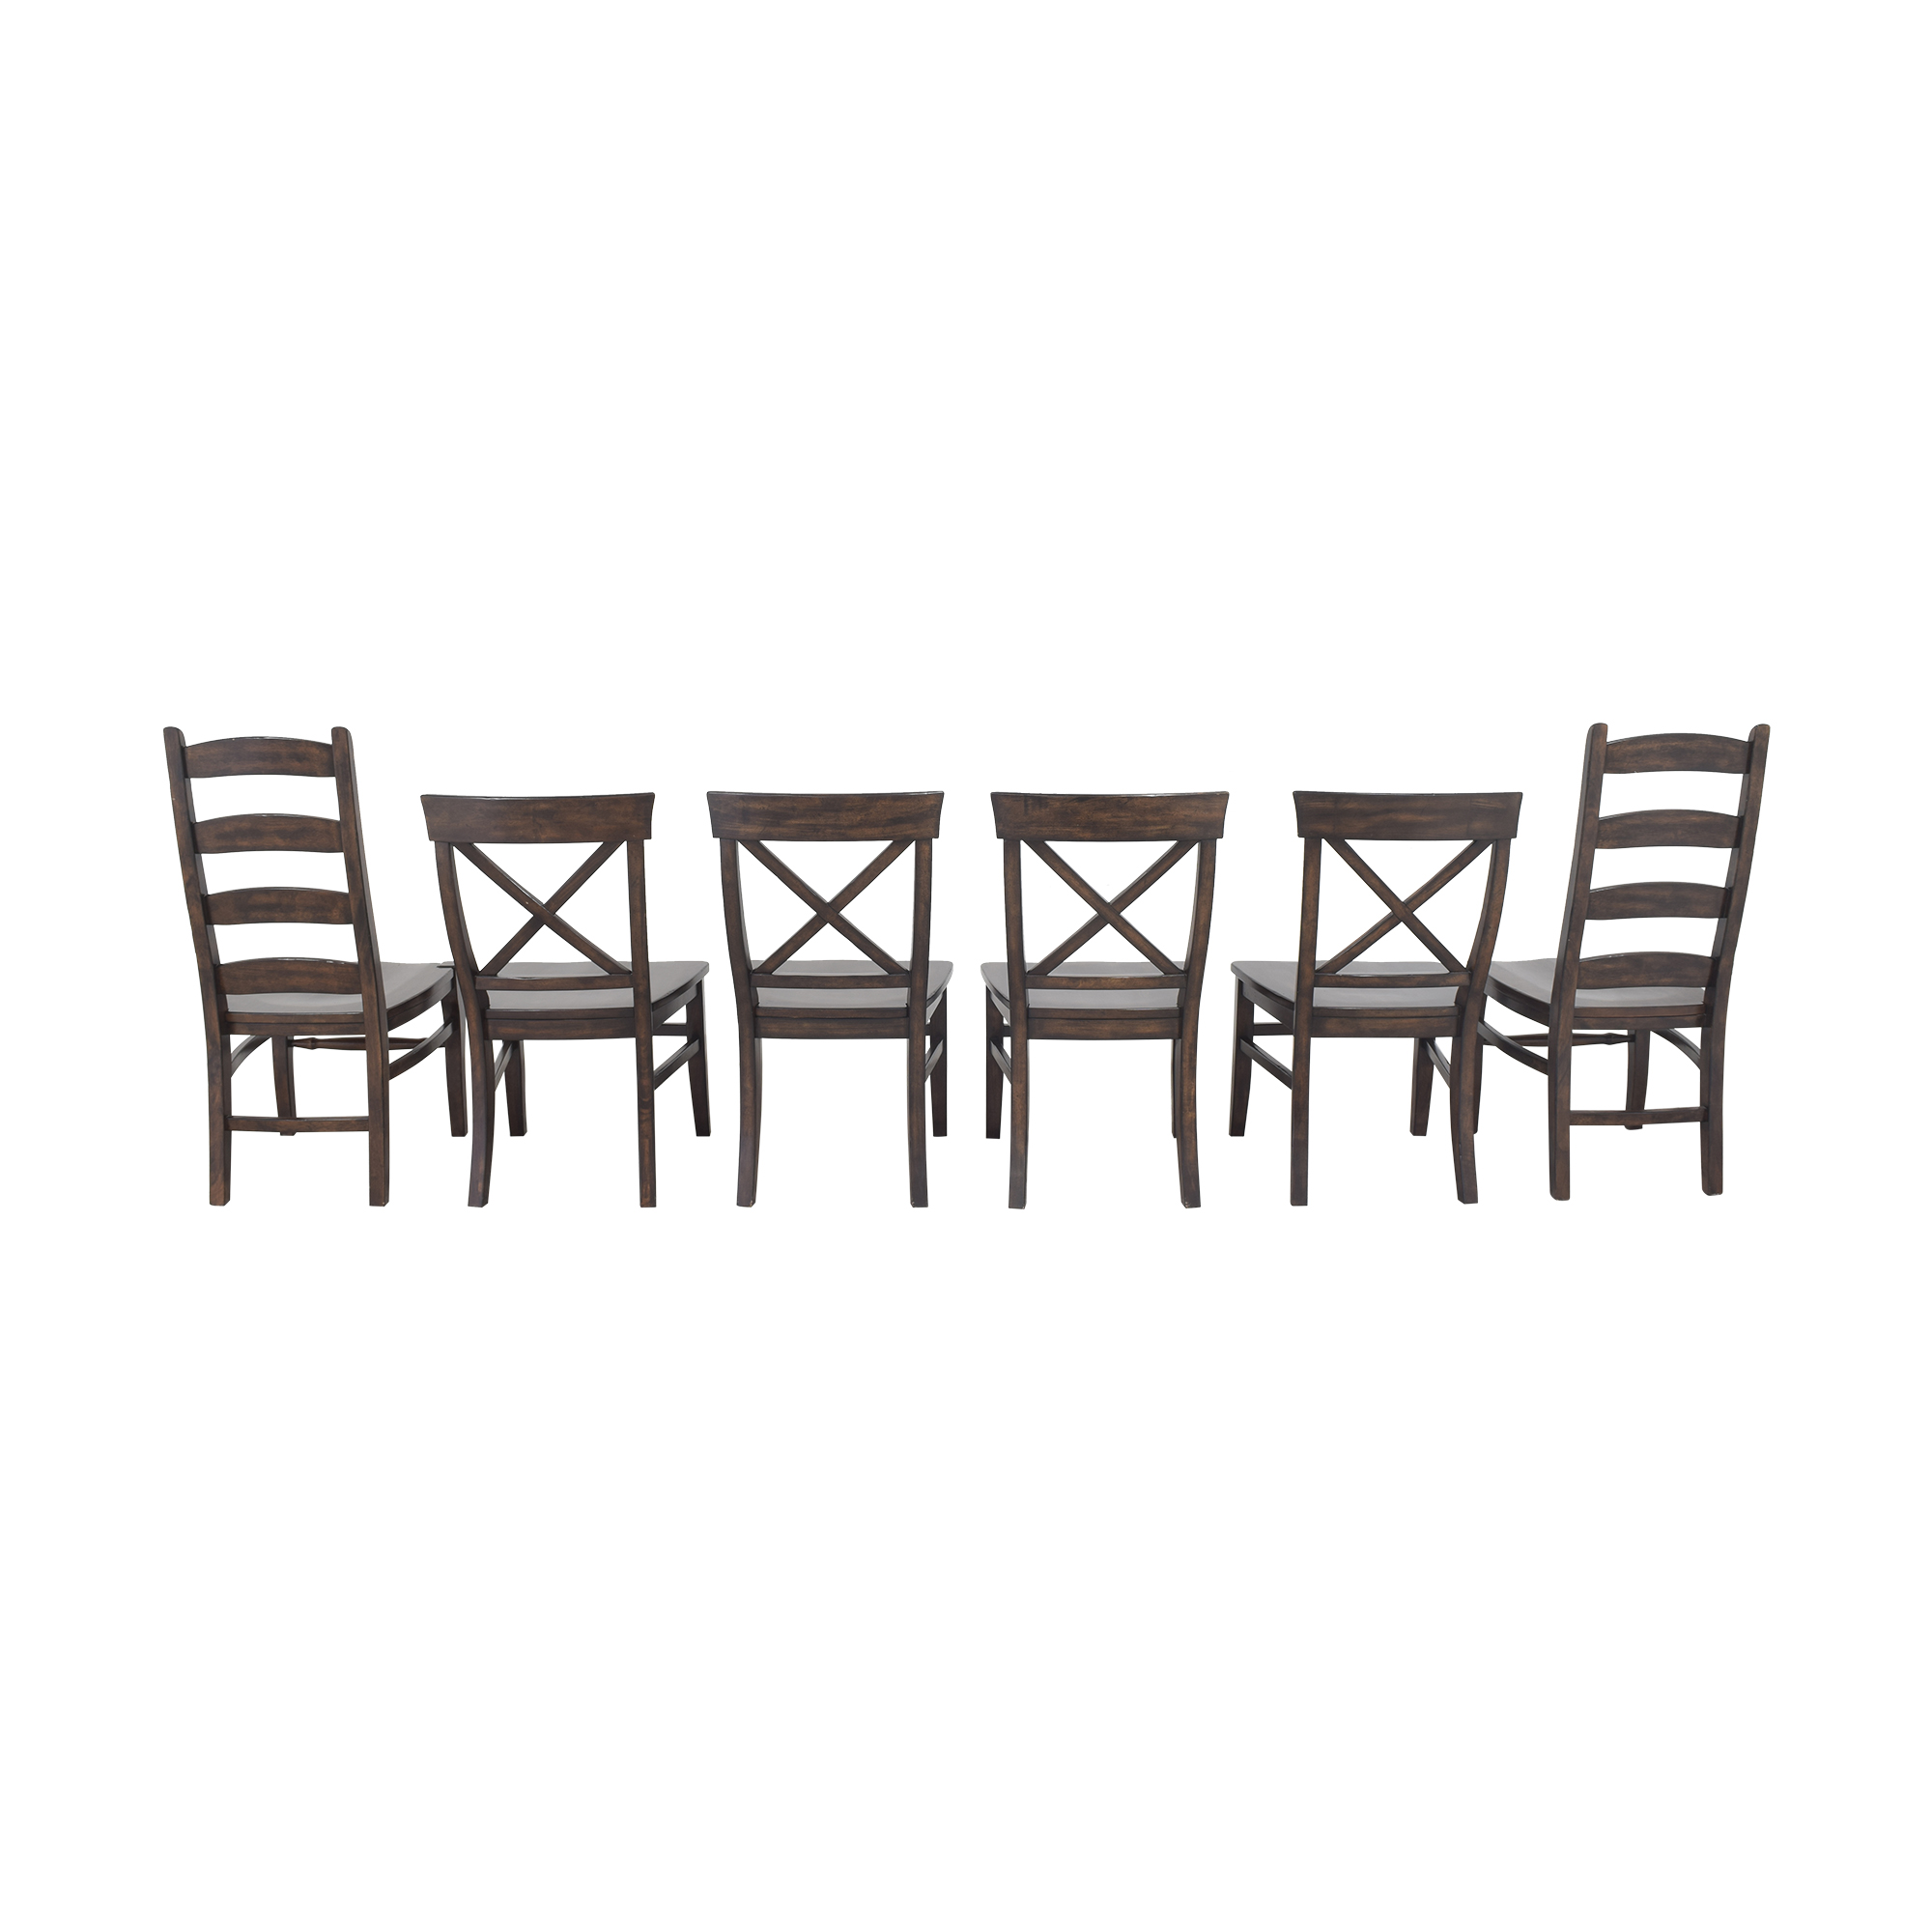 Pottery Barn Pottery Barn Aaron and Wynn Ladderback Dining Chairs for sale